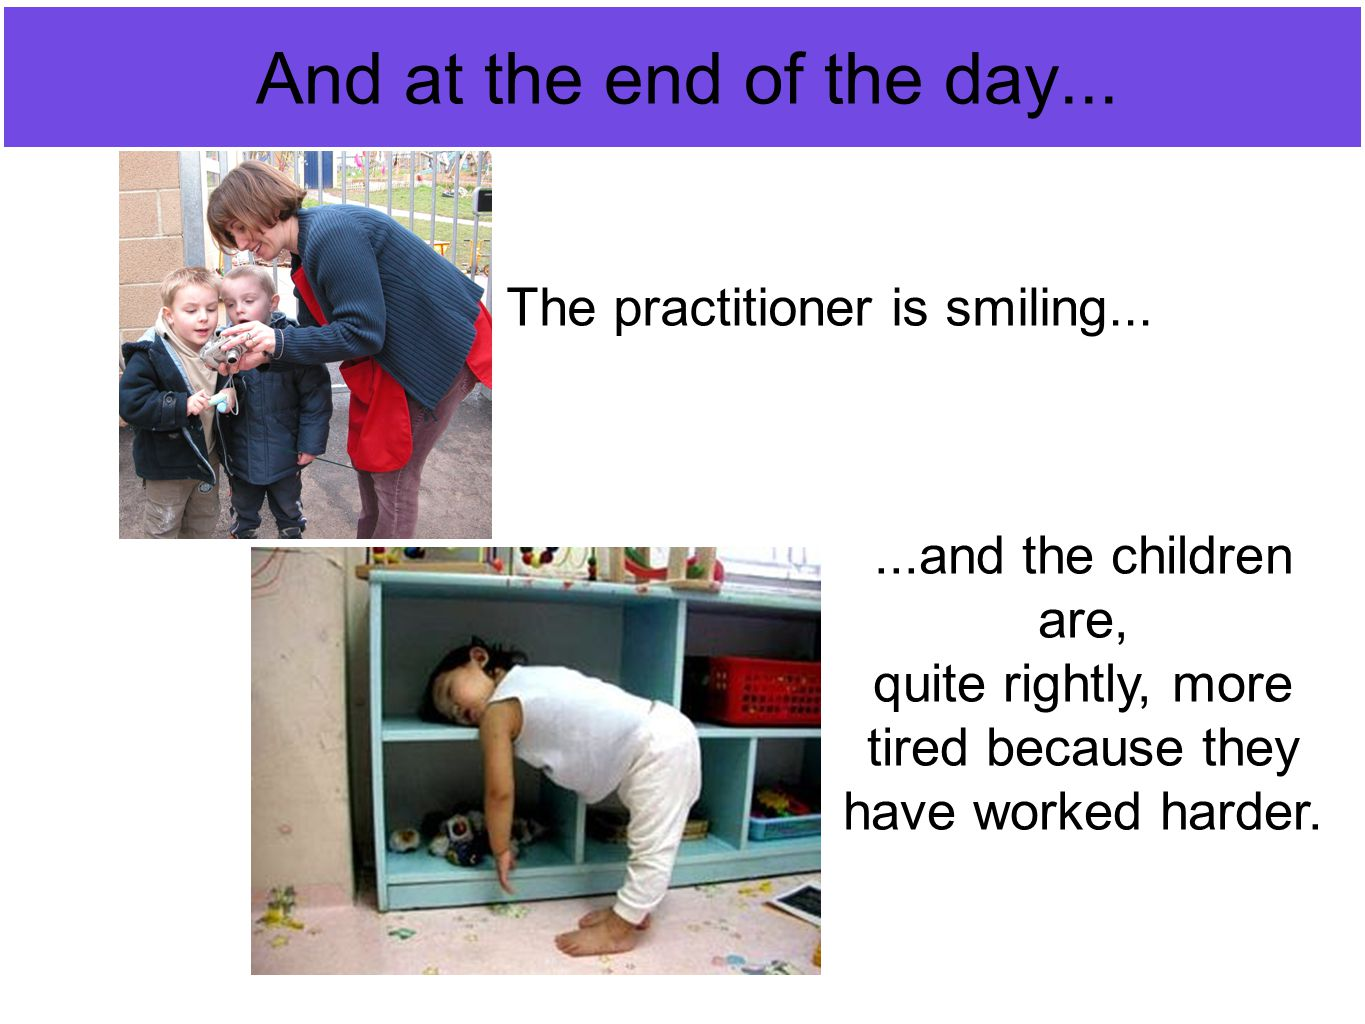 And at the end of the day... The practitioner is smiling......and the children are, quite rightly, more tired because they have worked harder.